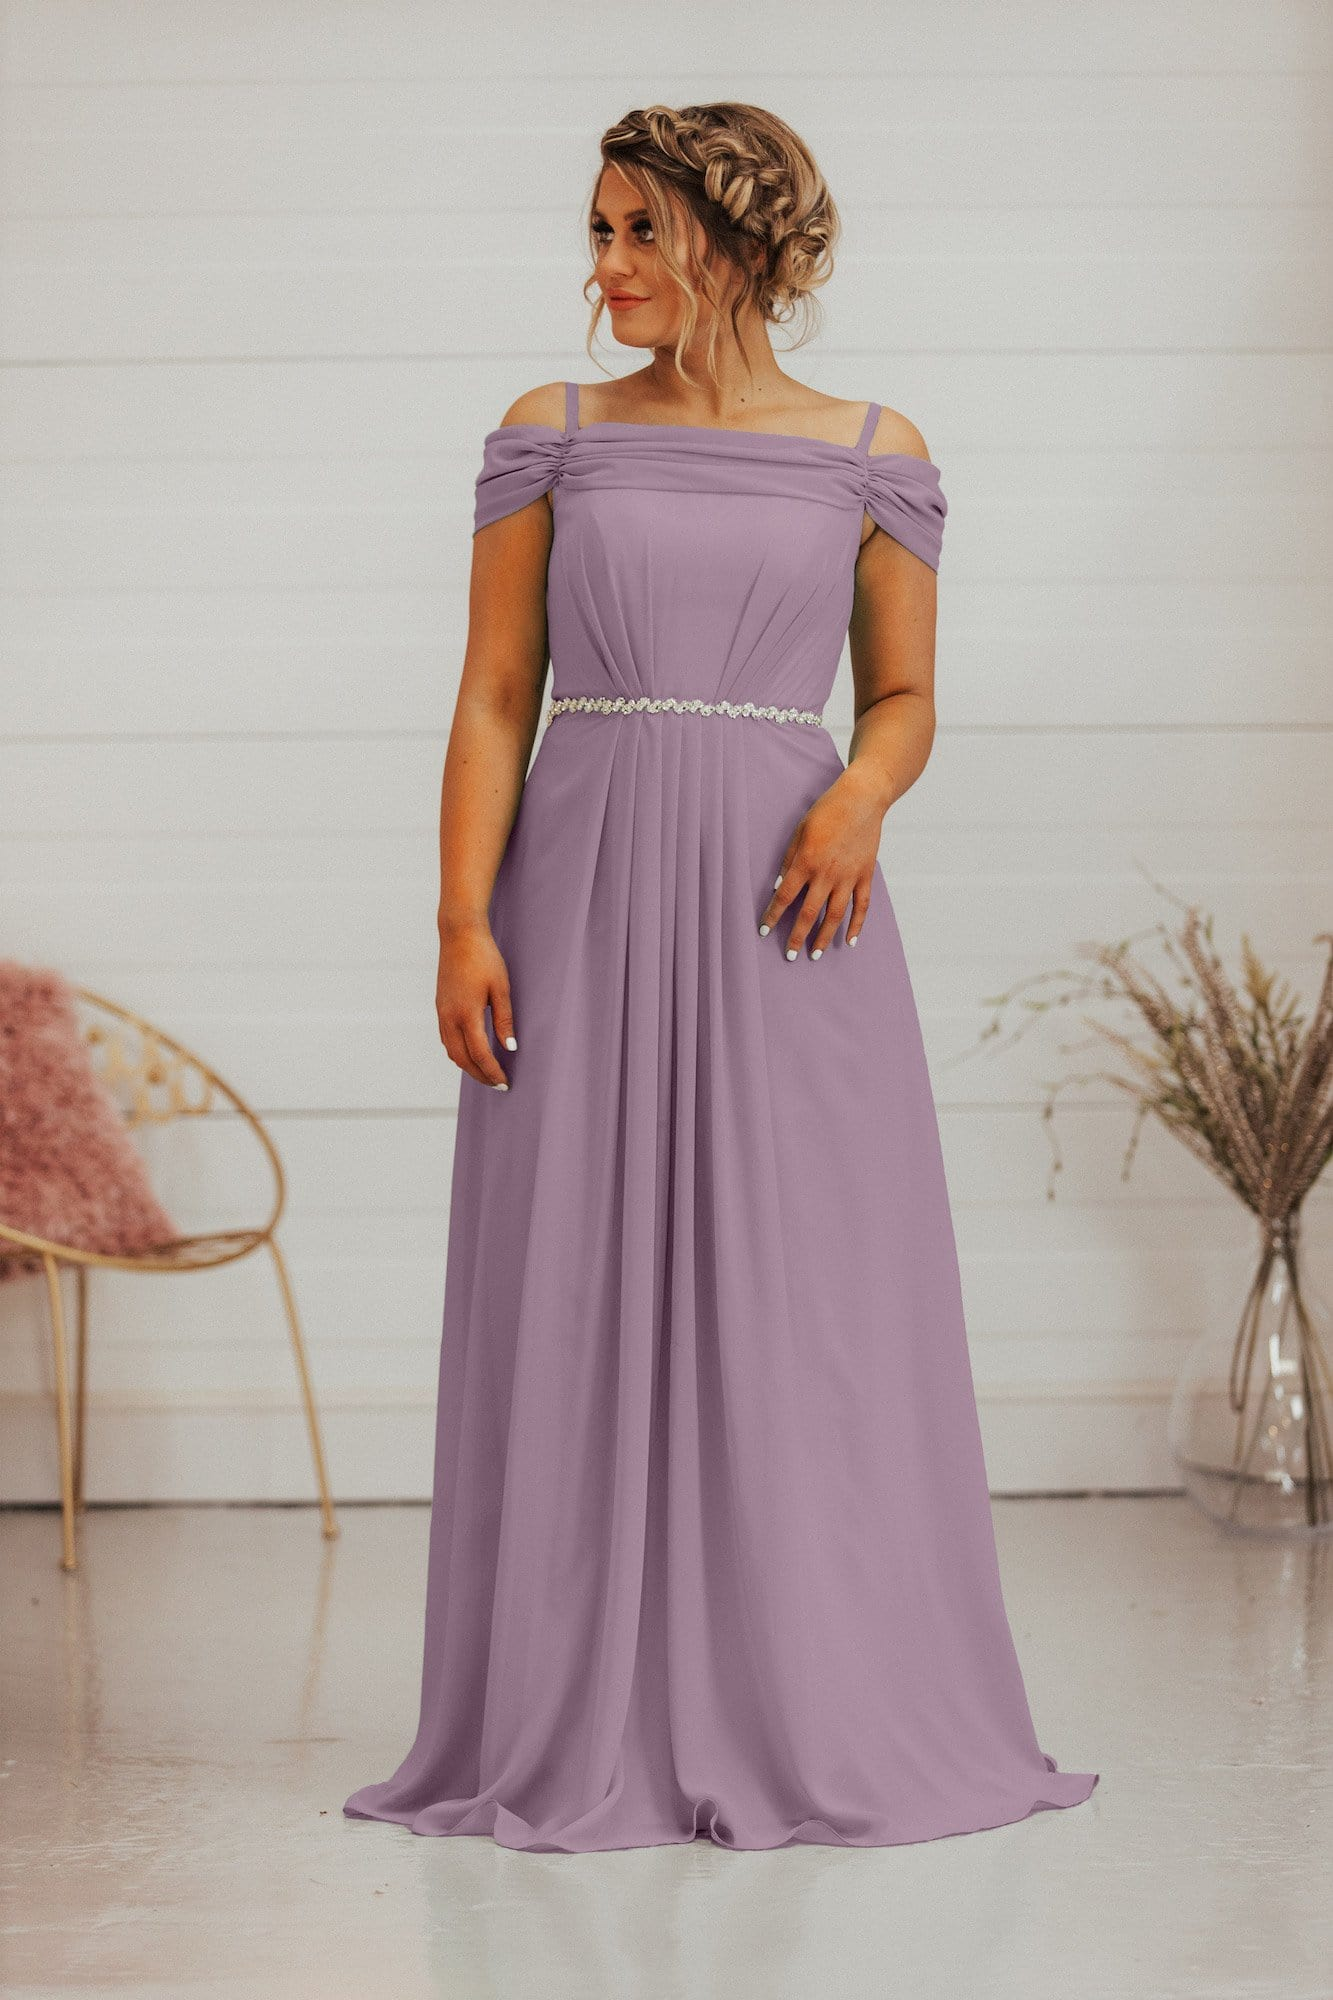 Savannah Dress | Off The Shoulder A Line Bridesmaid Dress - That Special Day Bridal Warehouse